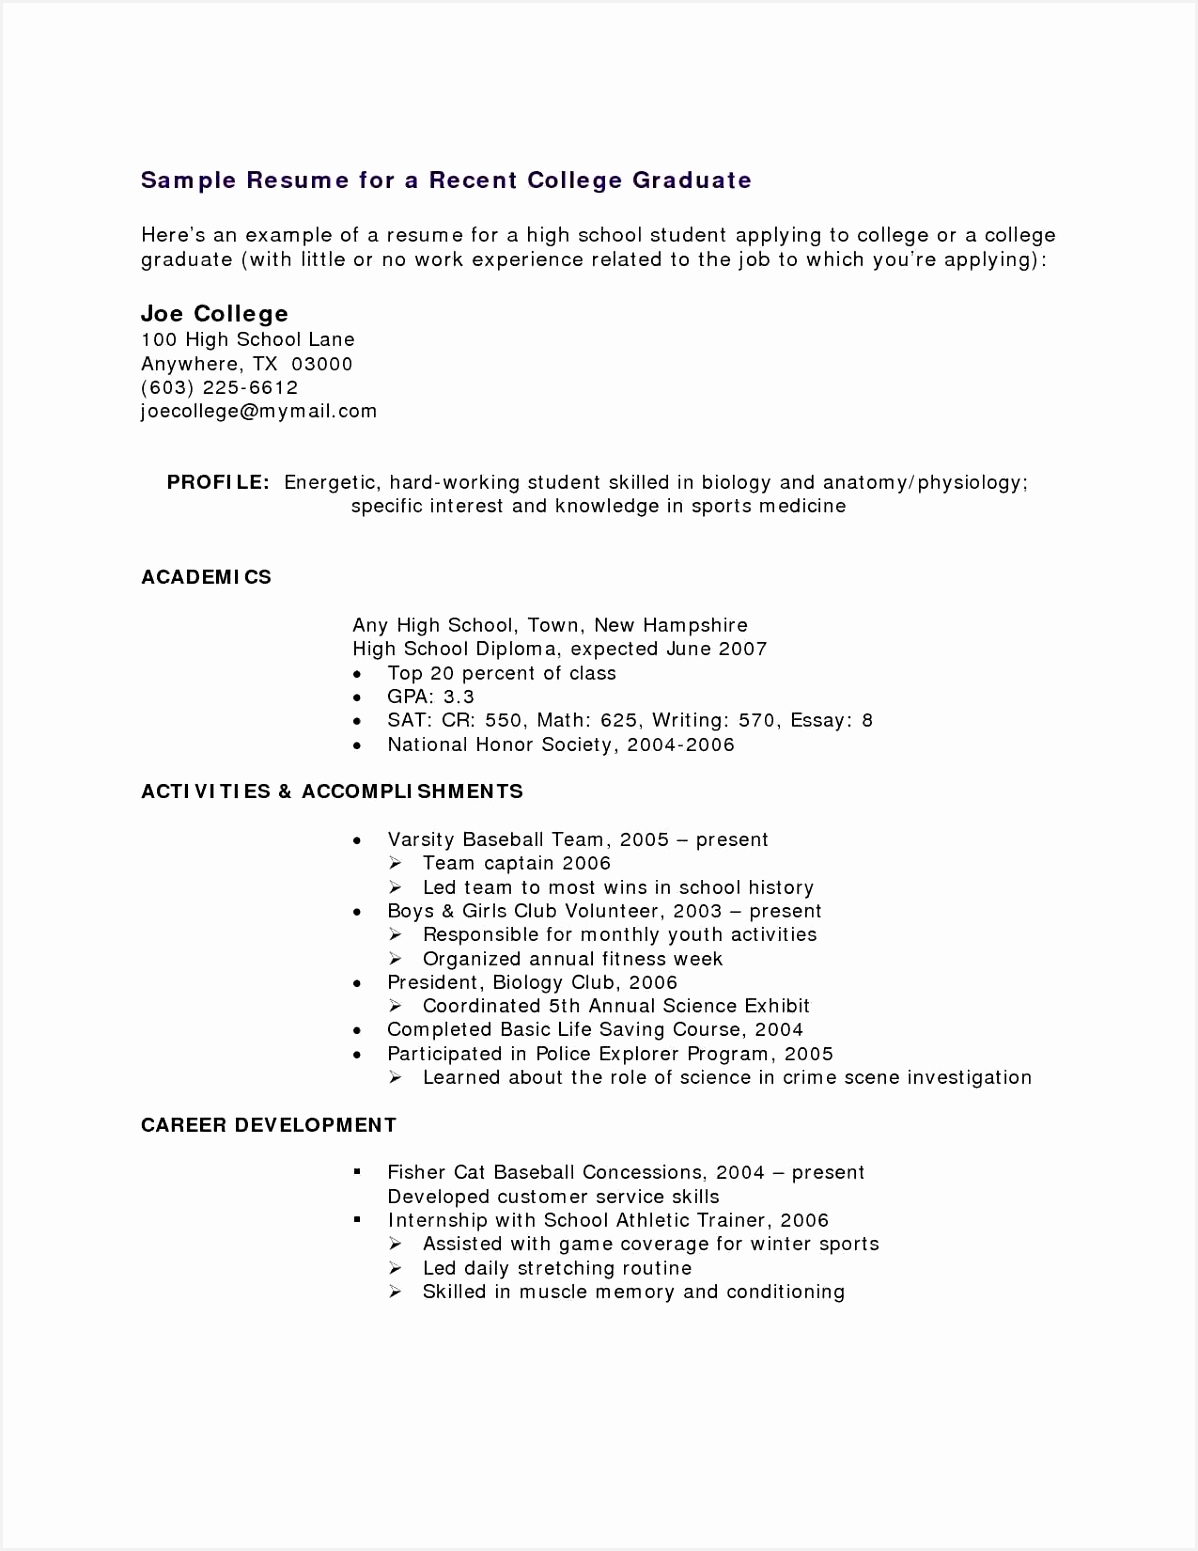 Resume Samples for Graduate School Gchle Inspirational Student Affairs Resume Samples Best Resume Examples for Jobs with Of Resume Samples for Graduate School Dhwab Lovely Resume for Graduate School Sample – Med School Resume Template